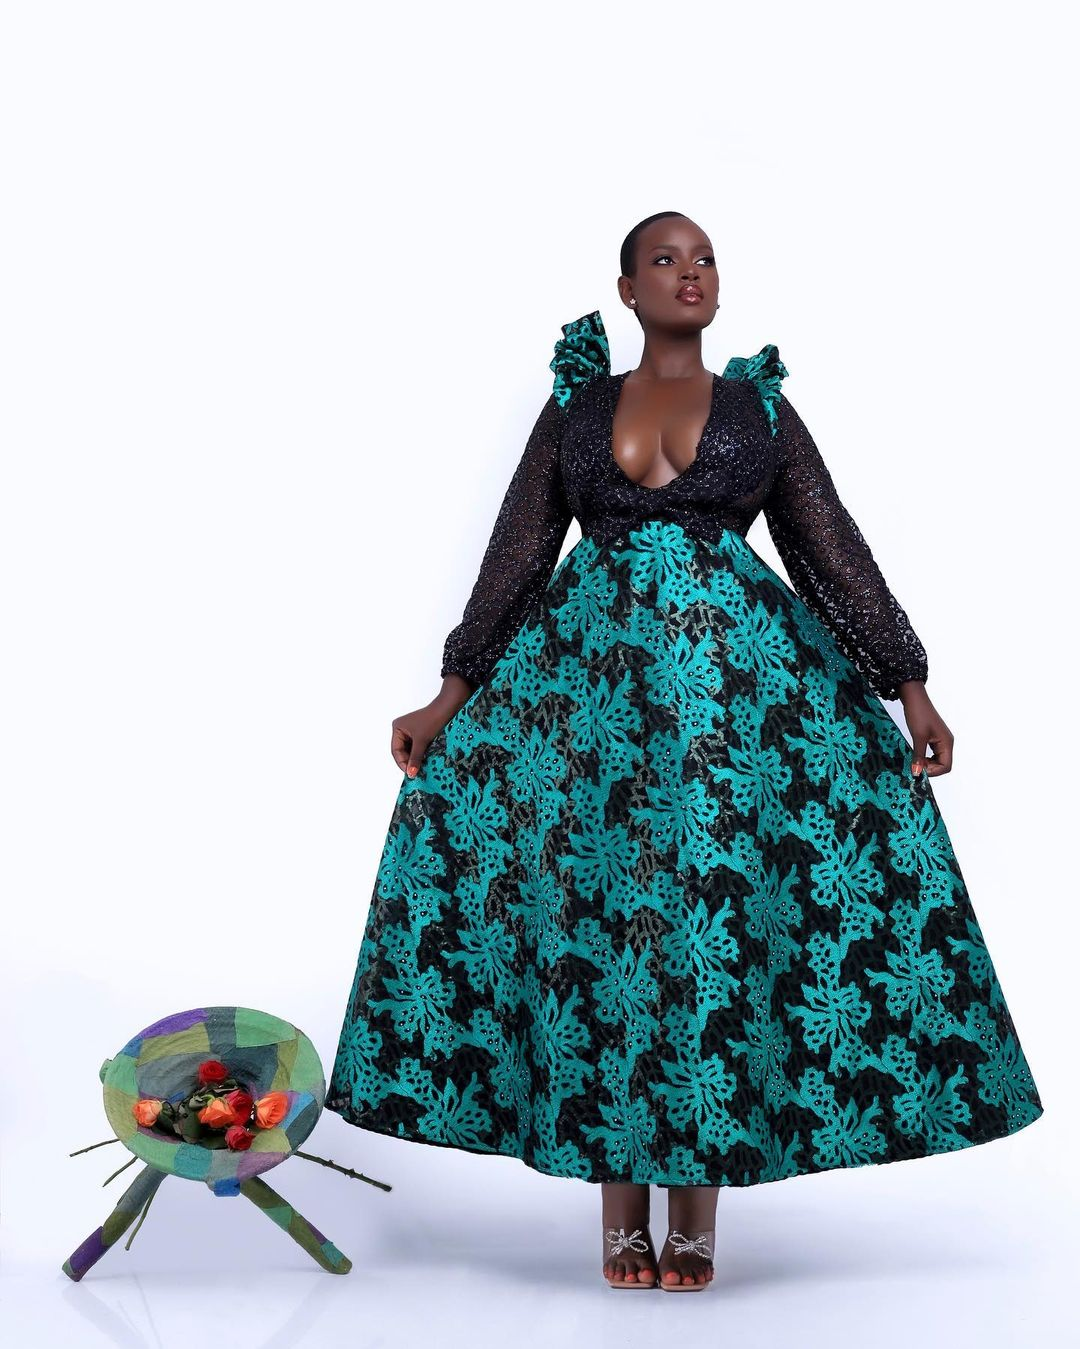 Bettinah Tianah Rocks The Perfect Event Look